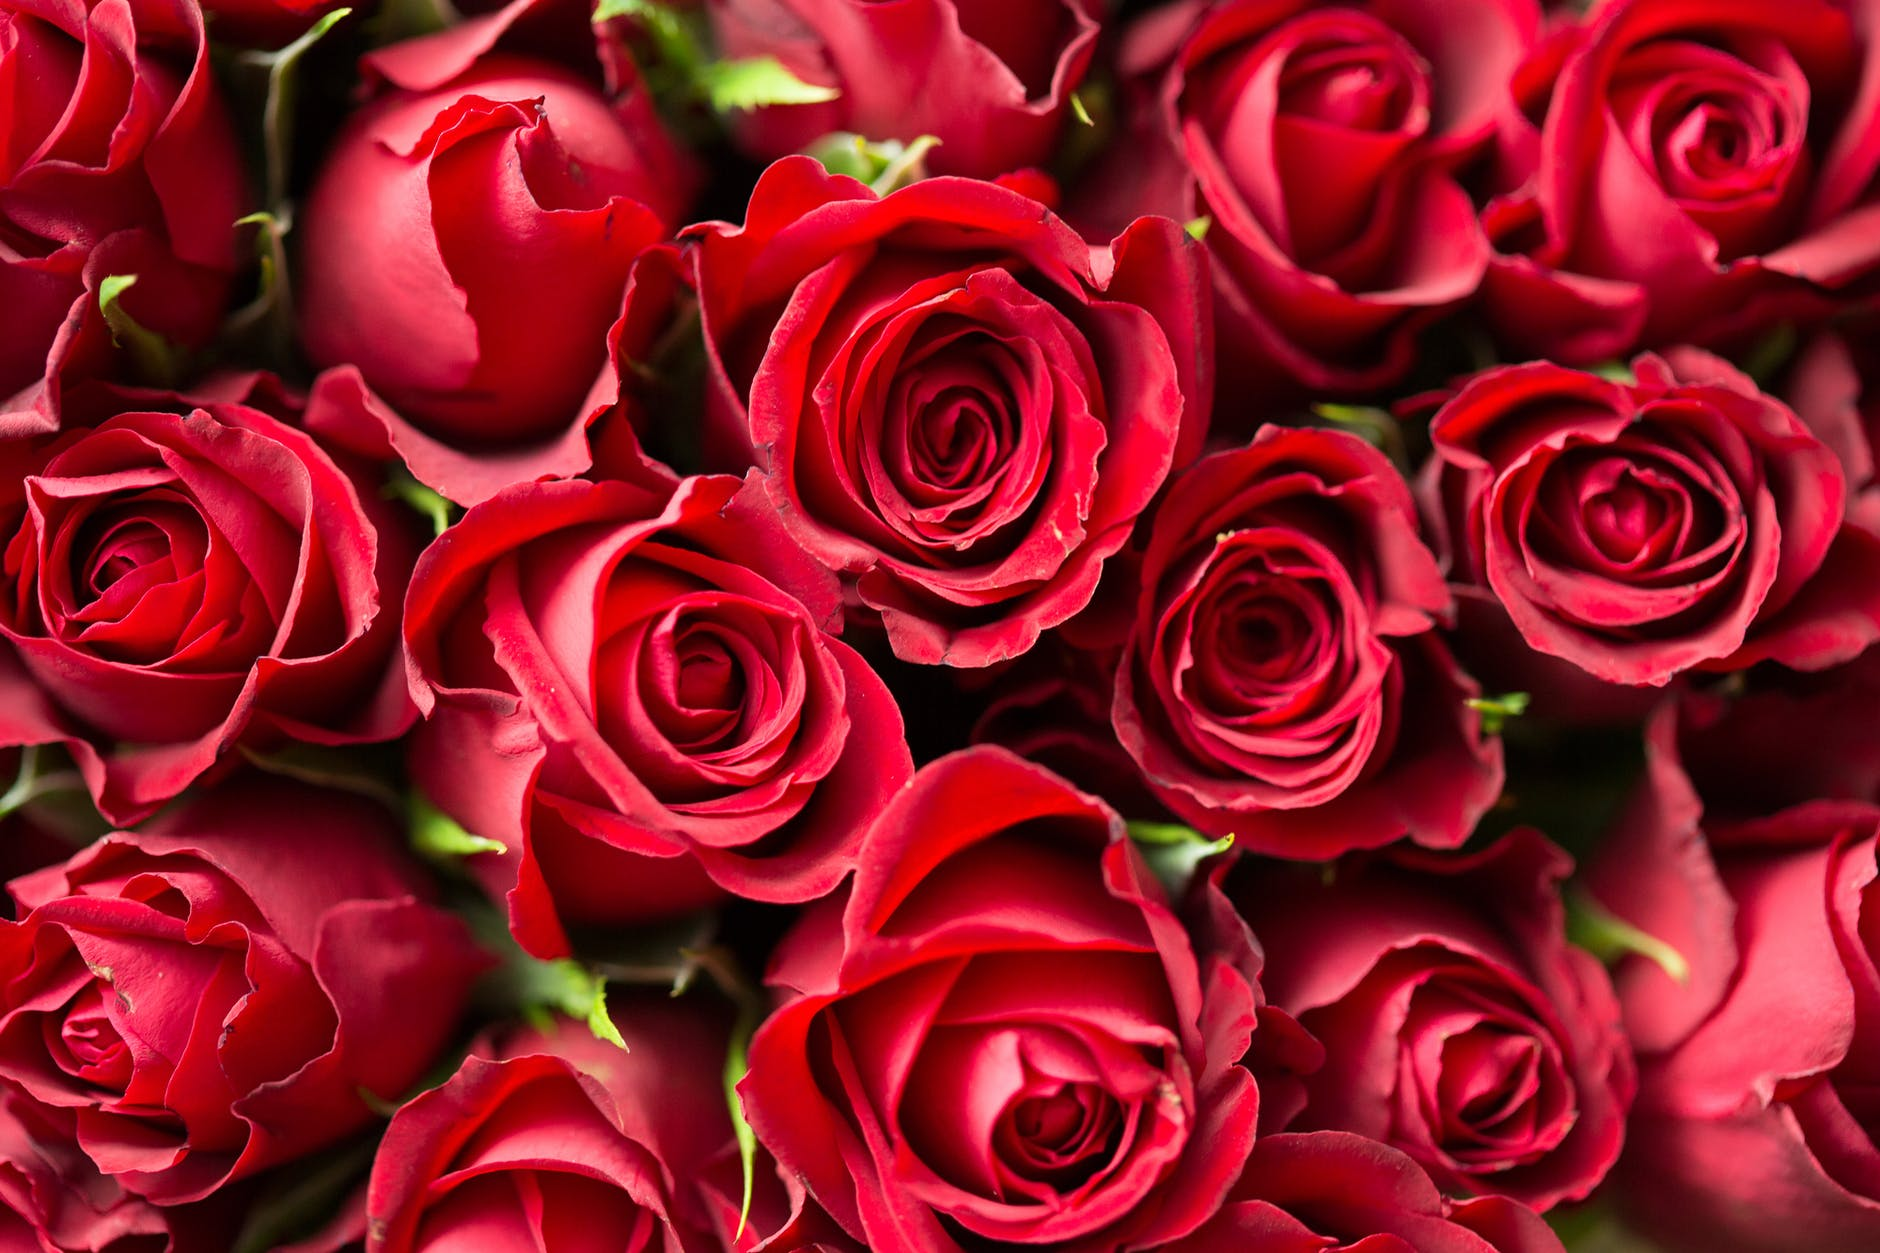 red roses close up photography